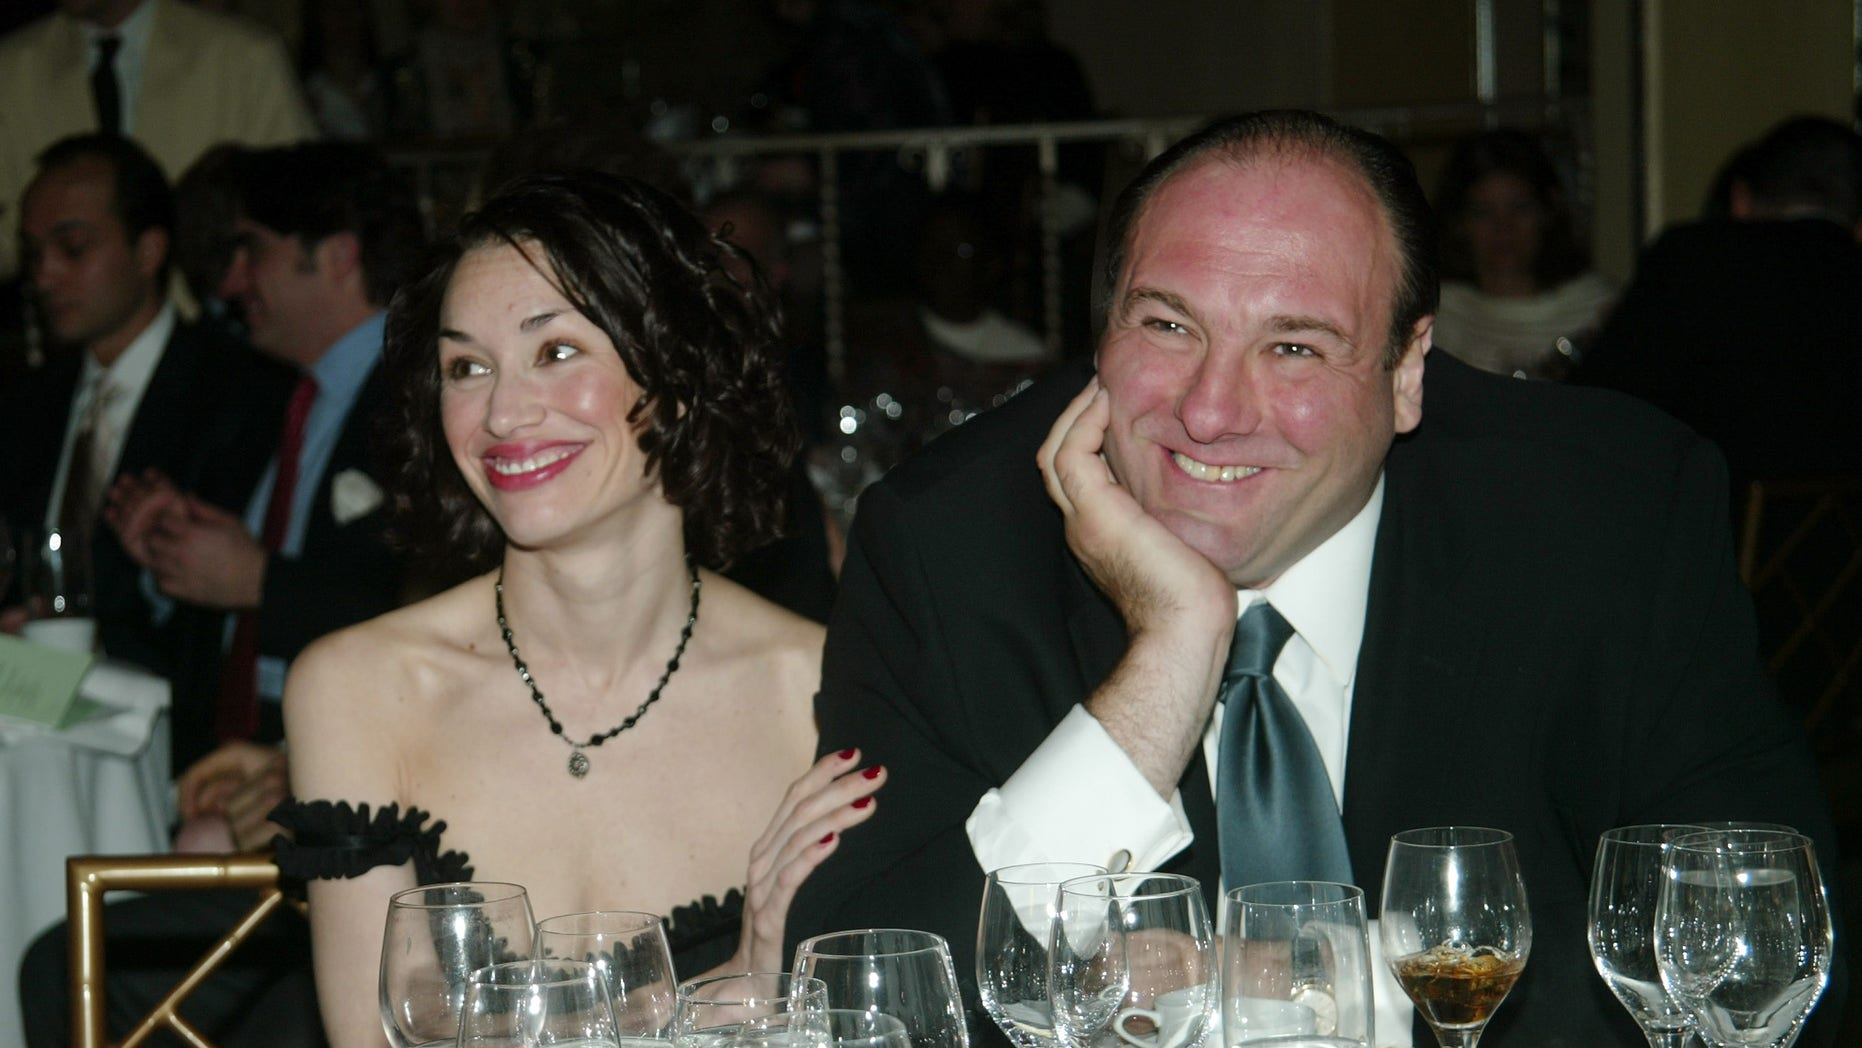 James Gandolfini and Lora Somoza at the Annual Benefit for the African Rainforest Conservancy April 5, 2003 in New York City.